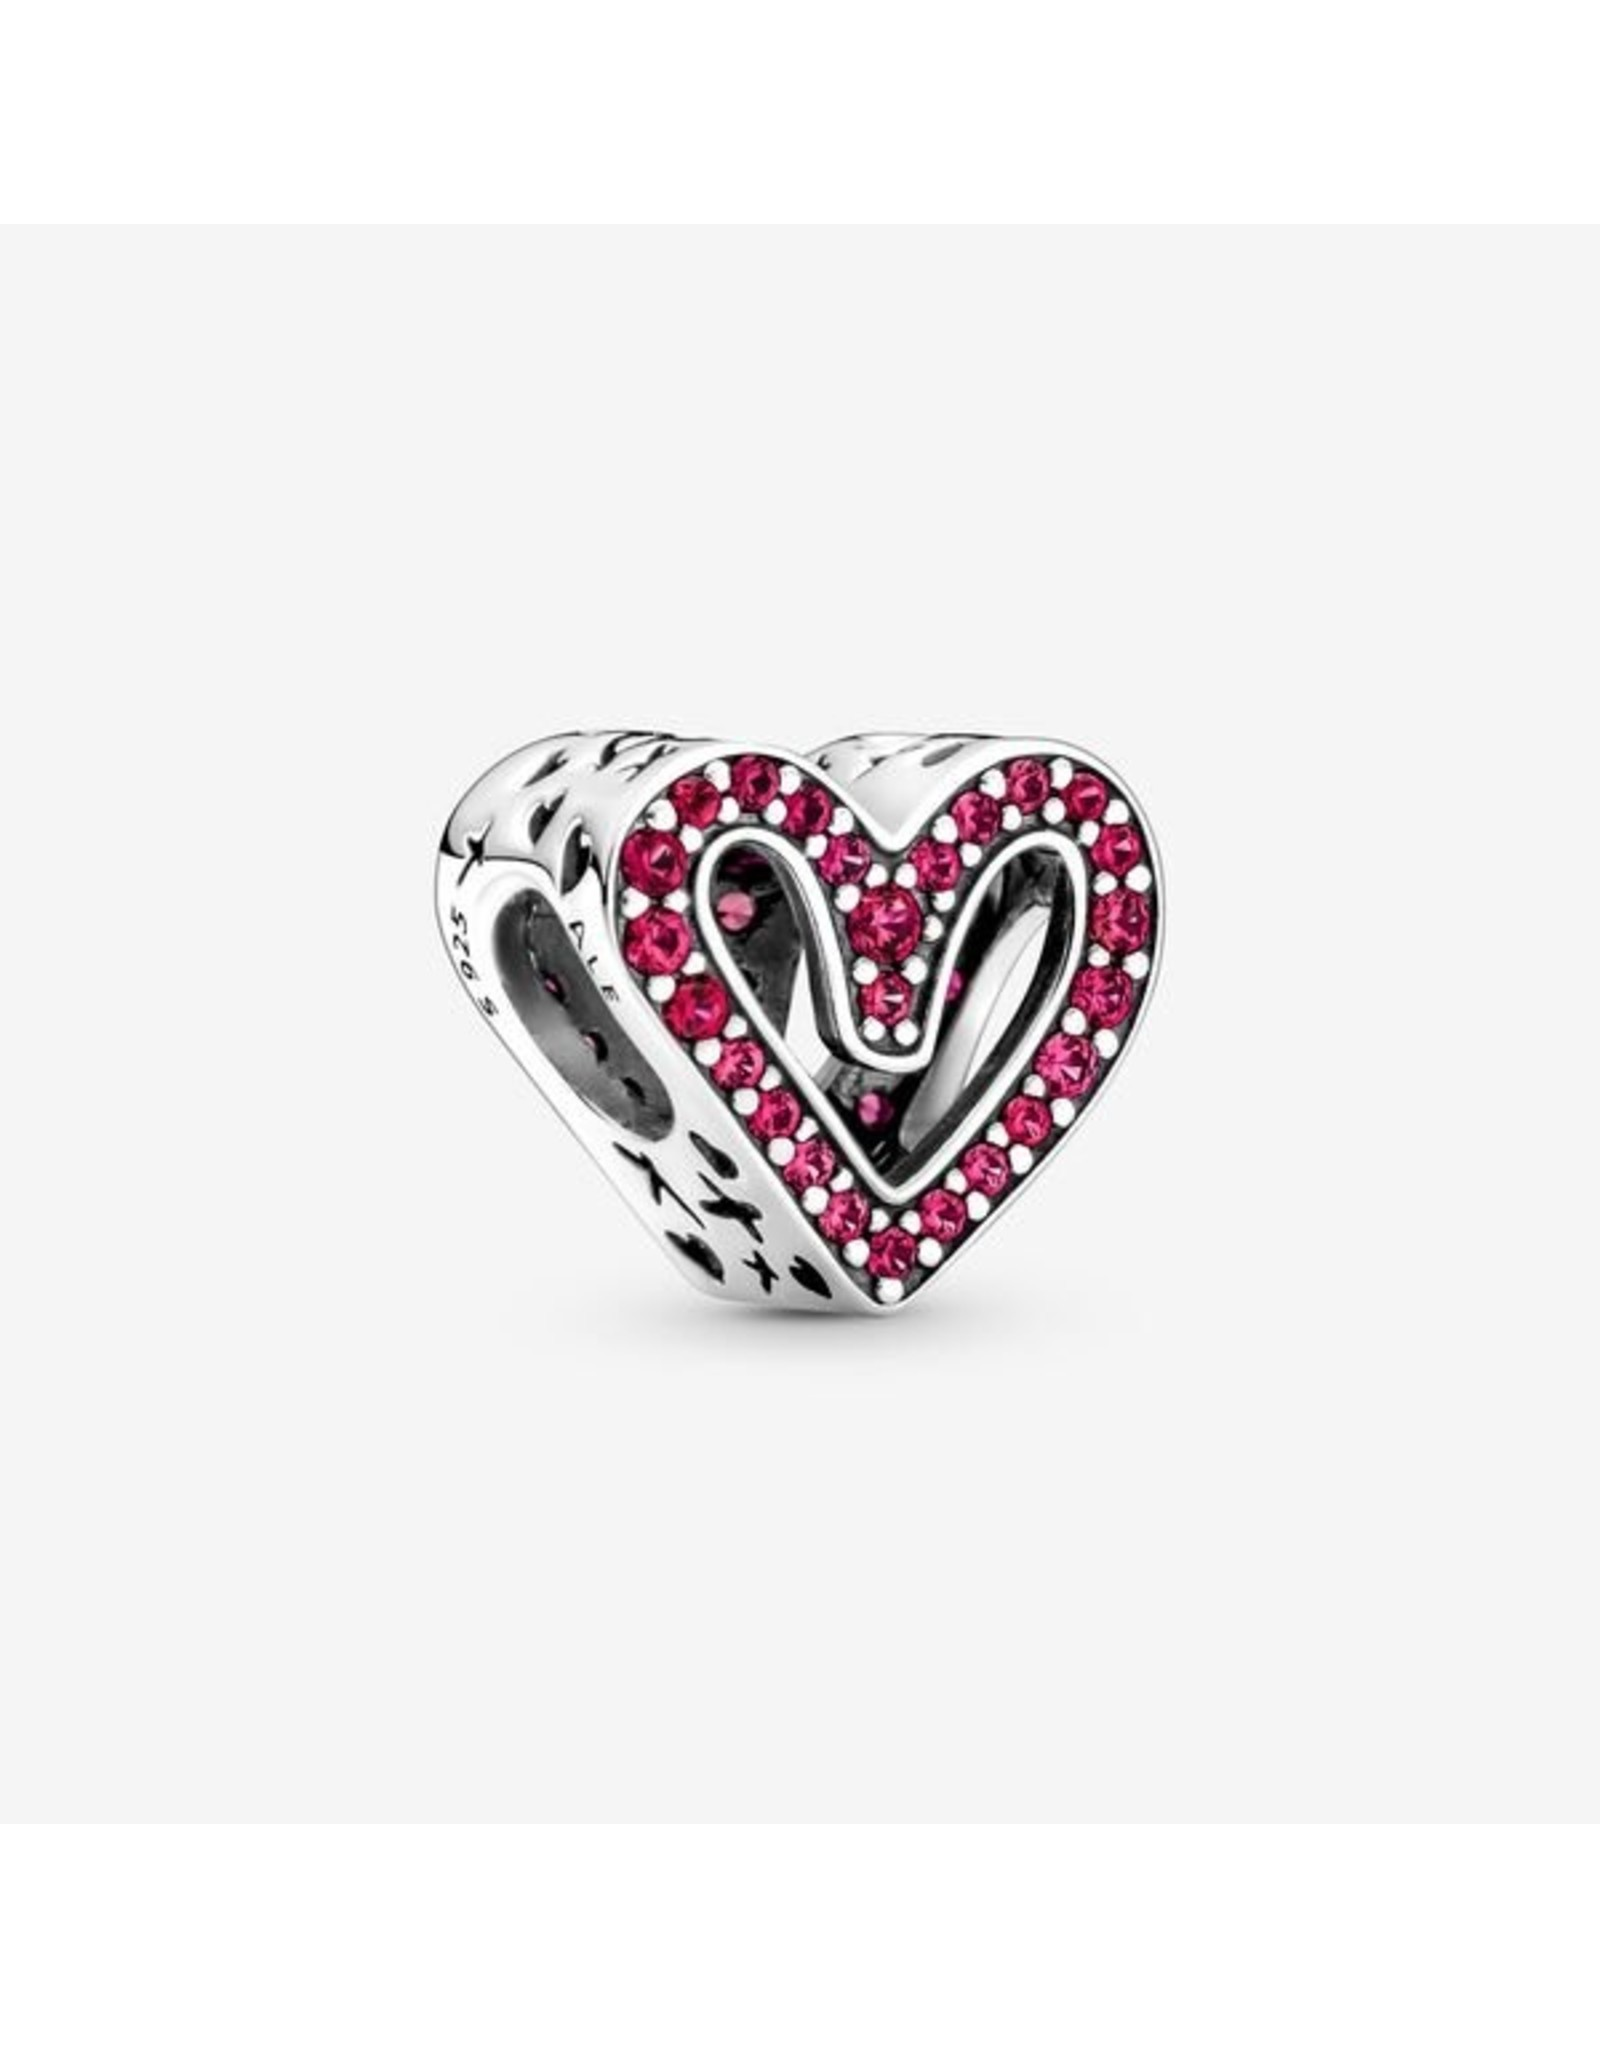 Pandora Pandora Charm,798692C02, Sparkling Ruby Red Freehand Heart, Synthetic Ruby